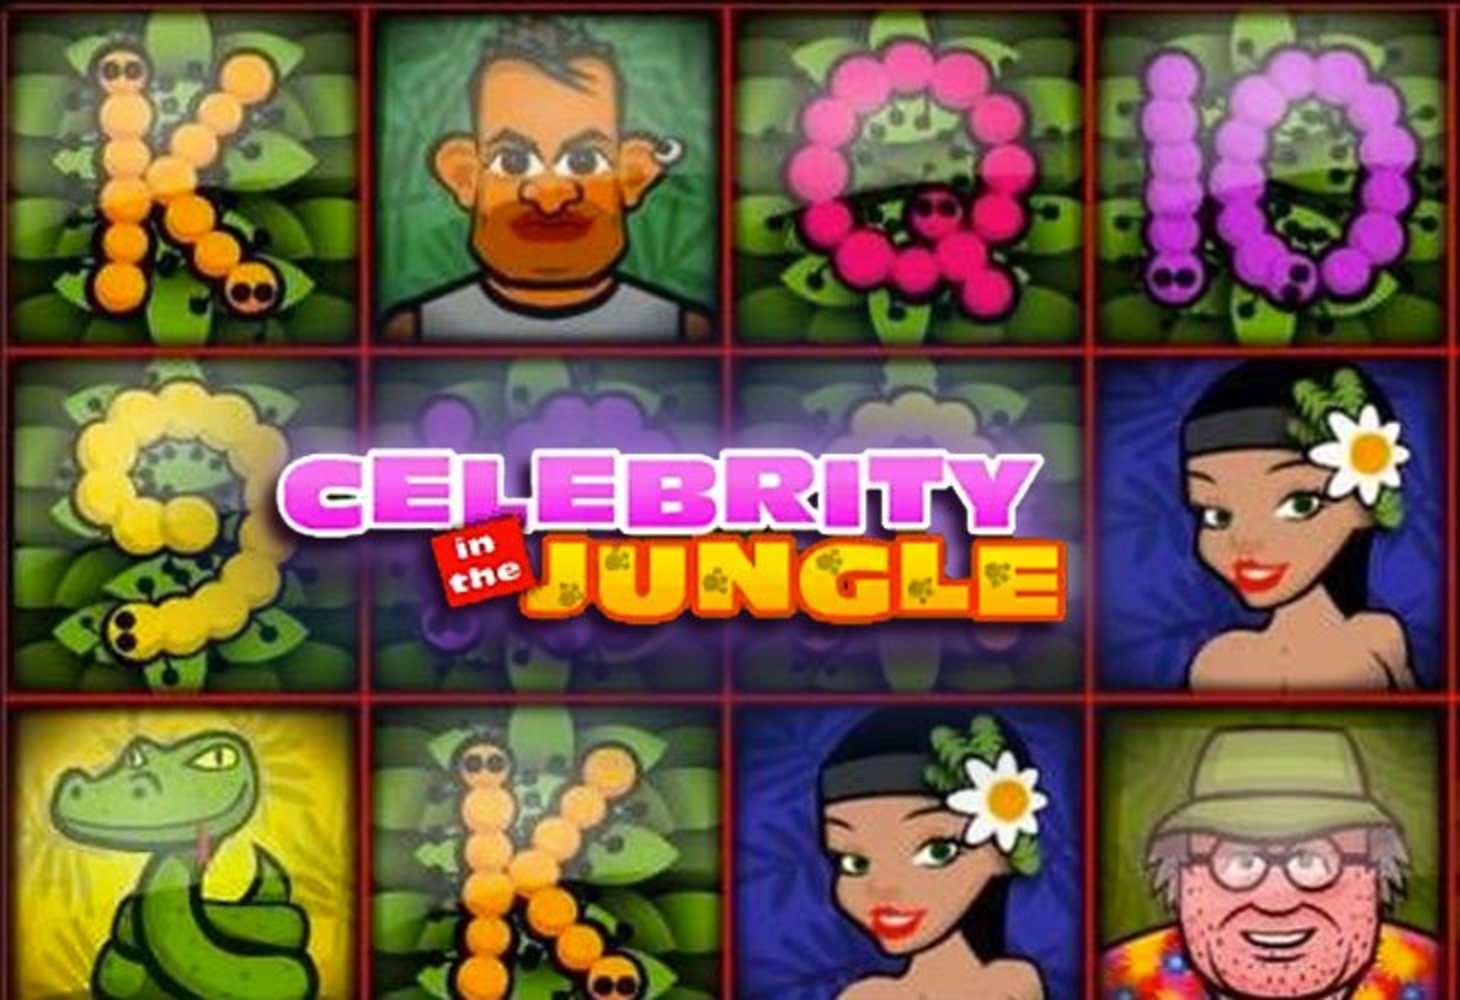 The Celebrity in the Jungle Online Slot Demo Game by 1x2 Gaming